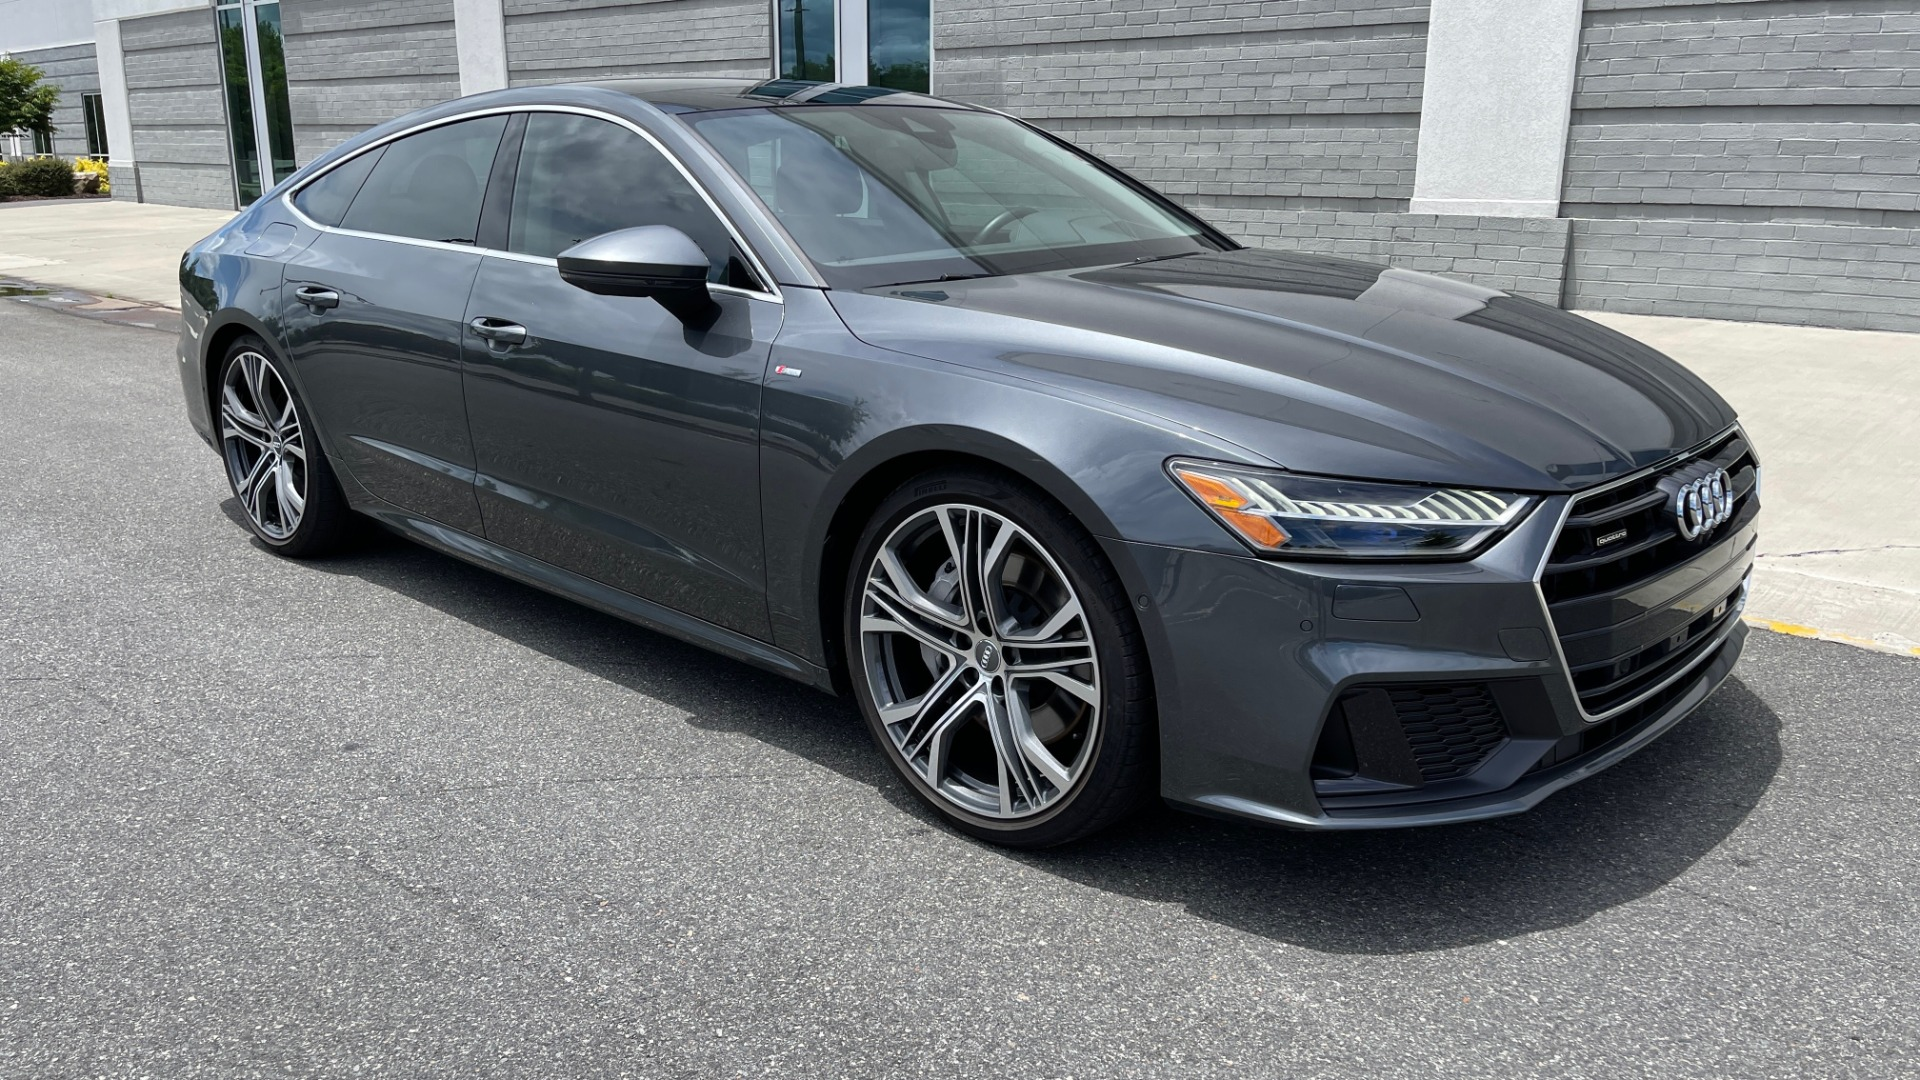 Used 2019 Audi A7 PRESTIGE 55 TFSI 3.0T / NAV / B&O SND / SUNROOF / S-LINE / 21IN WHLS / REAR for sale $66,995 at Formula Imports in Charlotte NC 28227 2